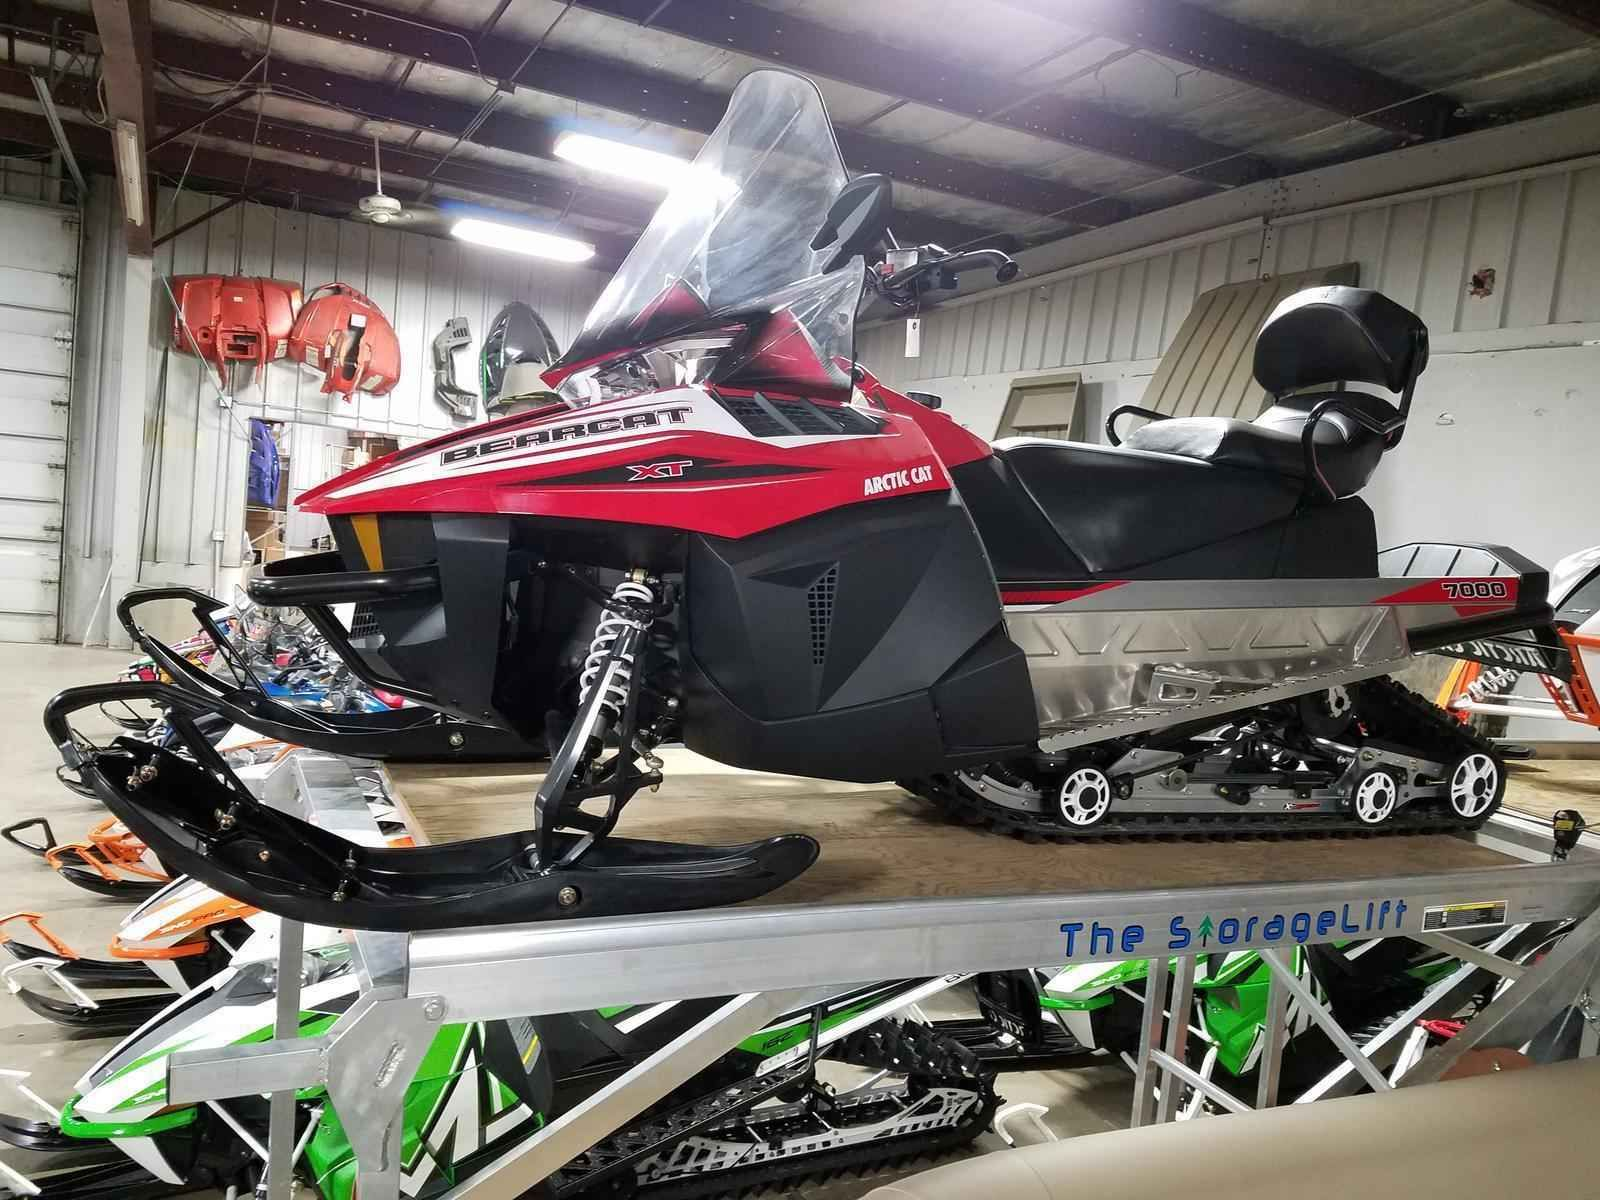 New 2016 Arctic Cat Bearcat 7000 XT Snowmobile For Sale in